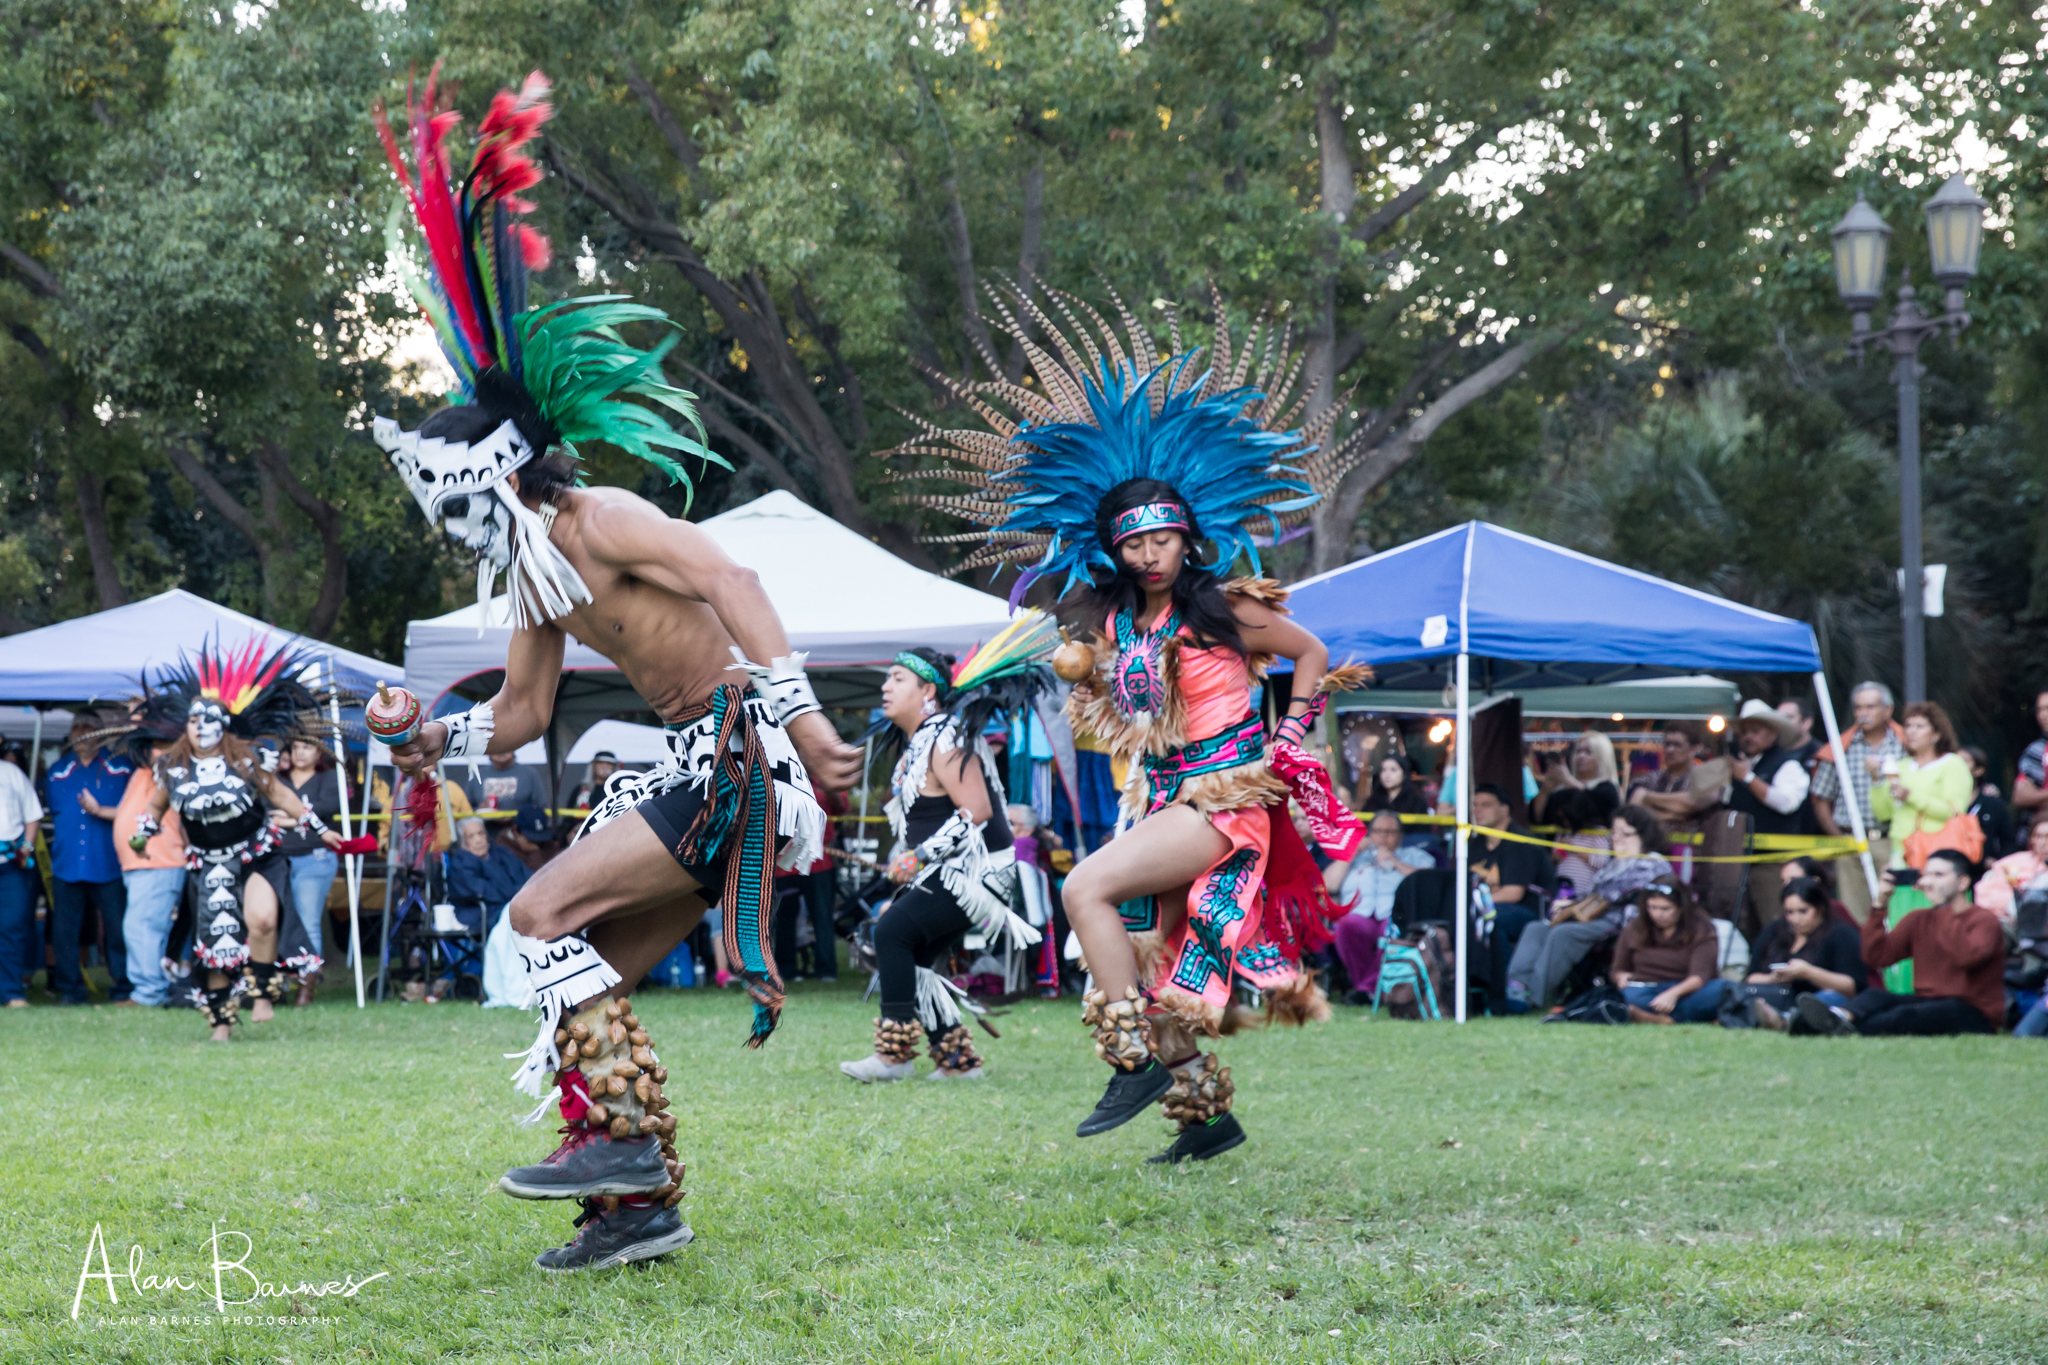 At the 2nd Pow Wow I attended, the dancing was more energetic and ritualistic.